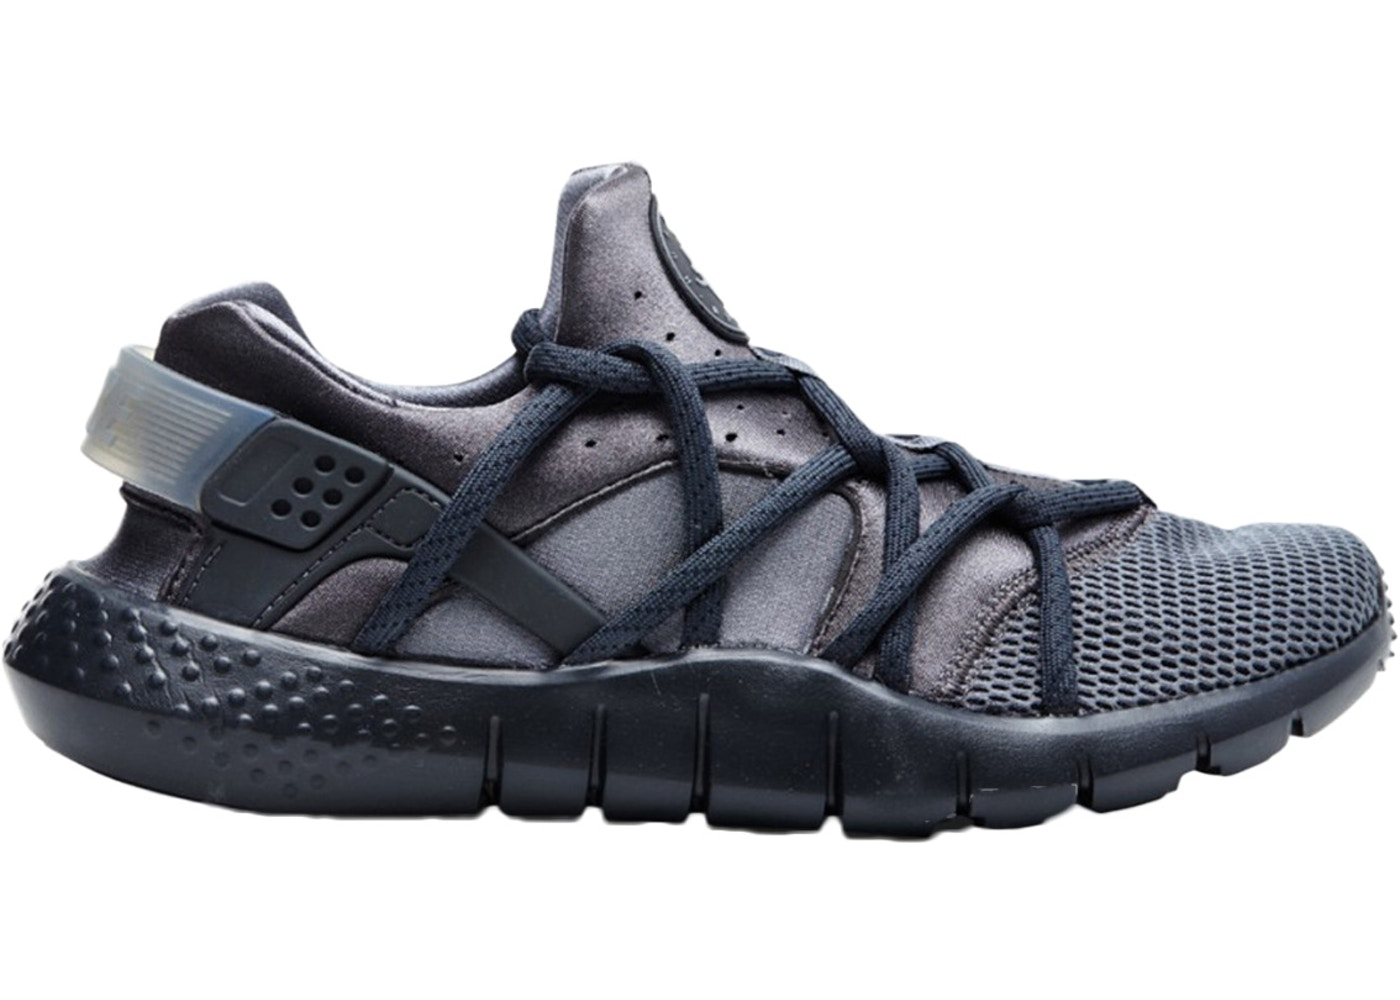 343f8a1b66d4 Air Huarache NM Dark Grey - 705159-005